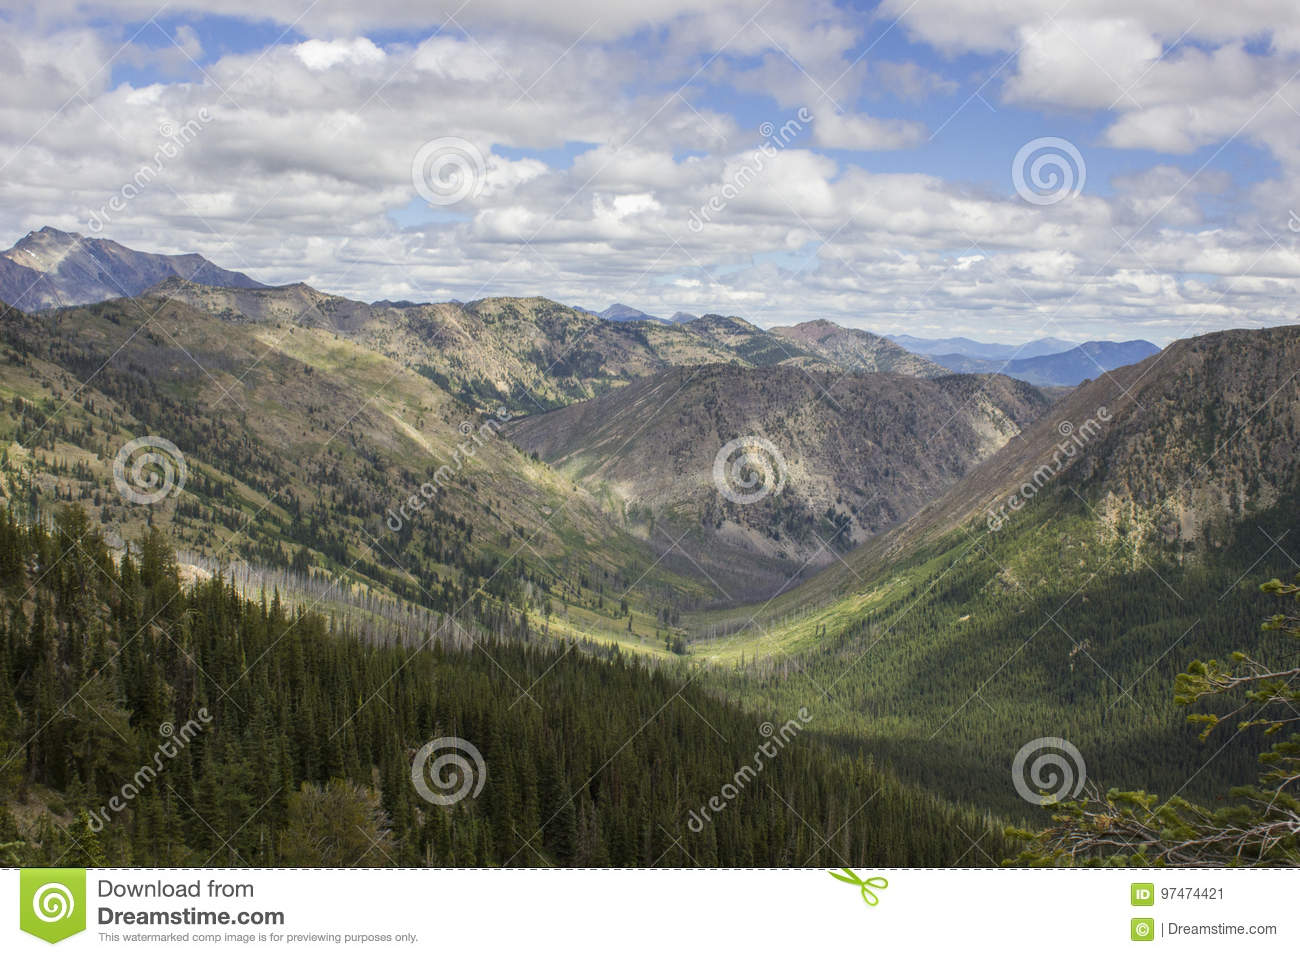 Glacier-Shaped Valley stock image  Image of alpine, ancient